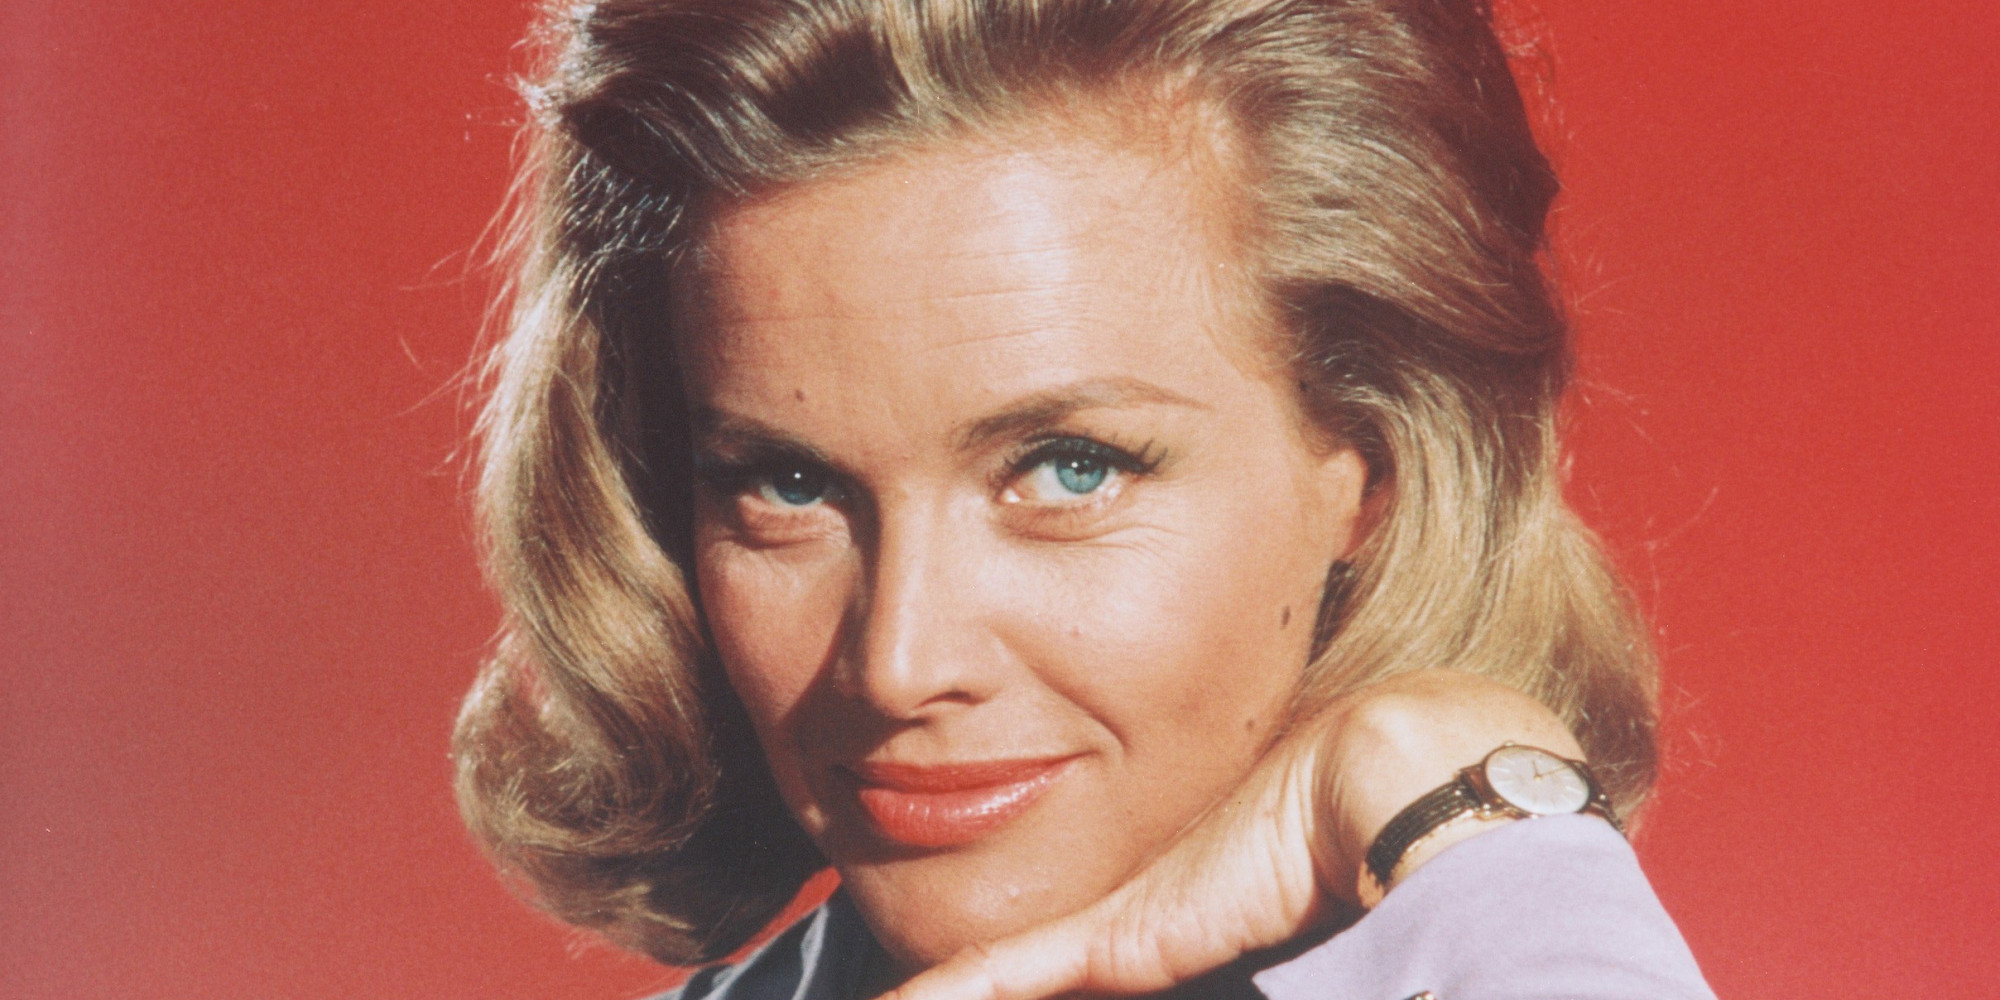 most famous bond girl, pussy galore, turns 89 | huffpost